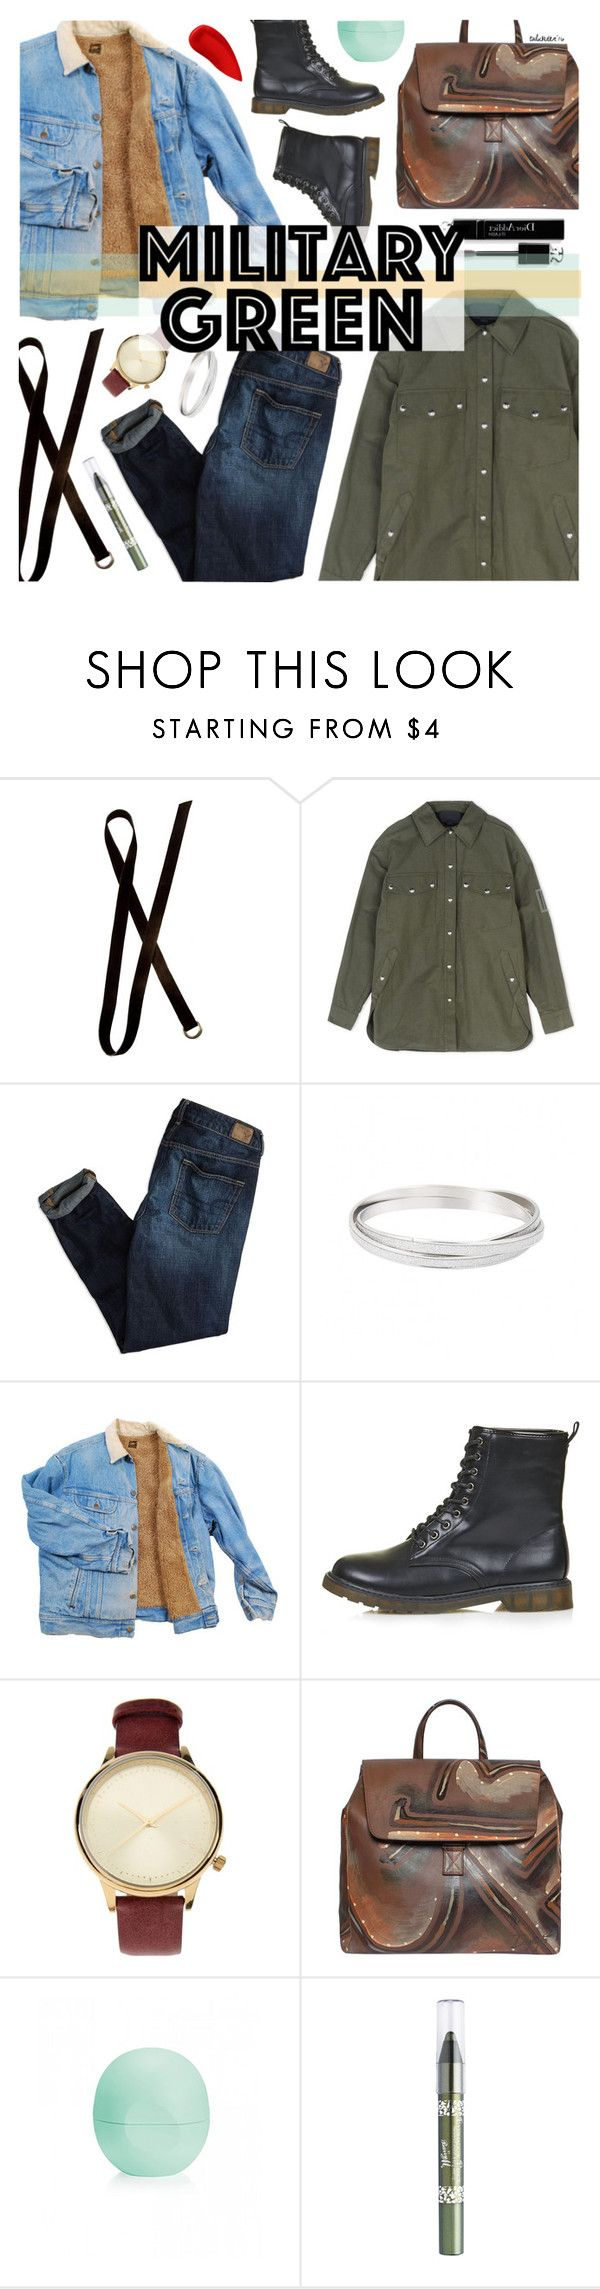 """Military Green"" by talukder ❤ liked on Polyvore featuring Dries Van Noten, Alexander Wang, American Eagle Outfitters, Topshop, Christian Dior, Komono, Eos, Barry M, Lipstick Queen and Gogreen"